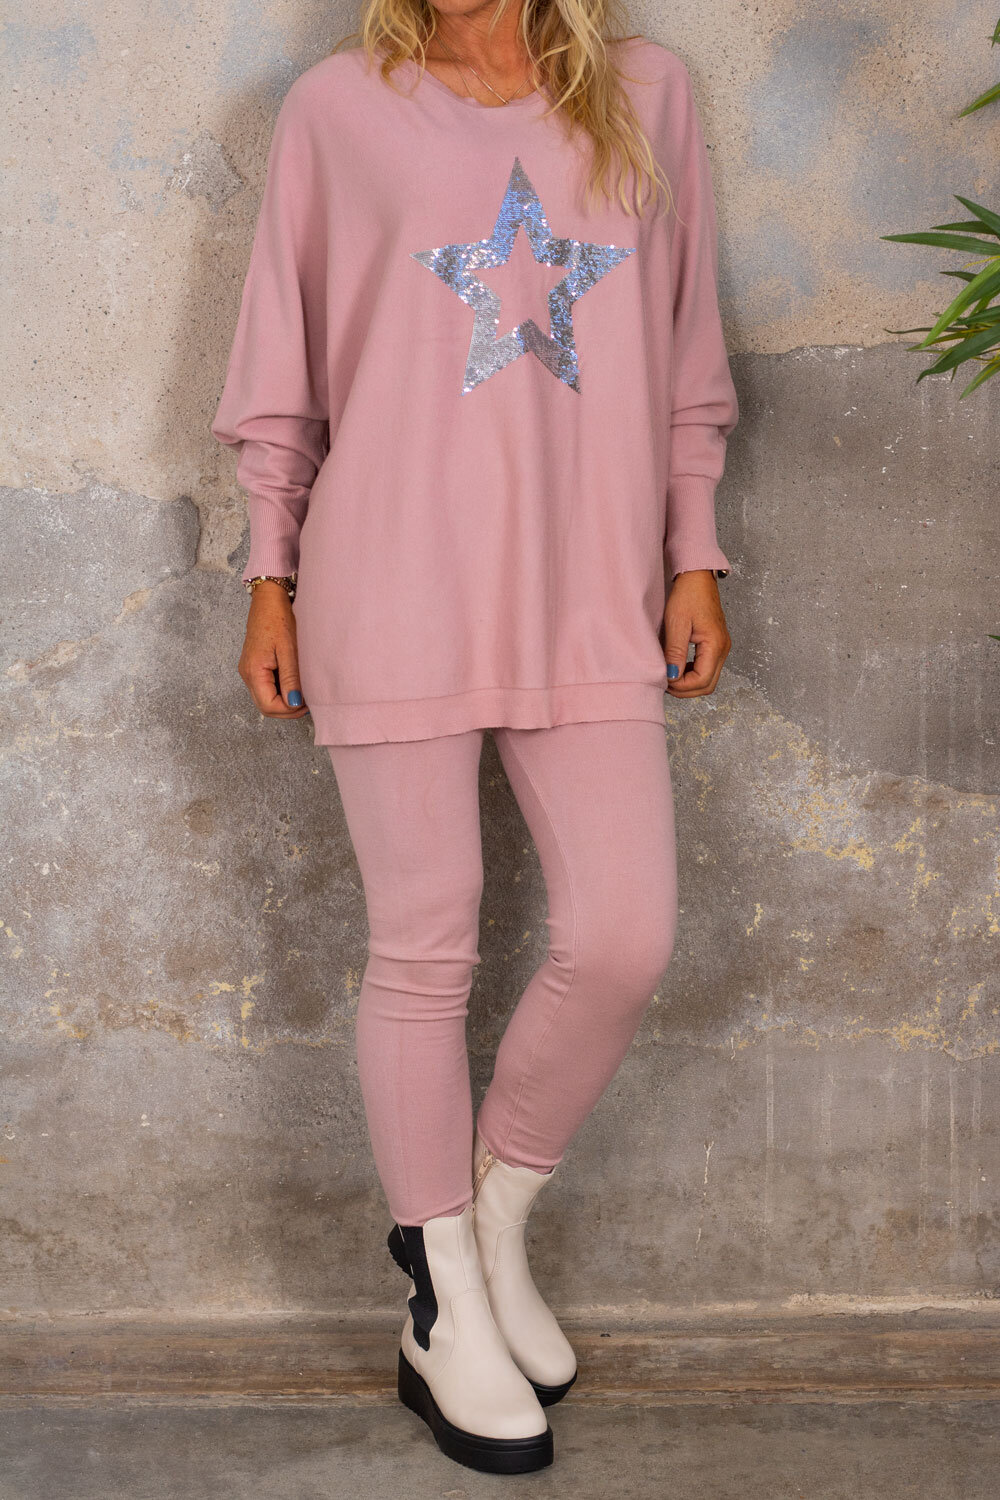 Sally - Knitted set - Star - Pink